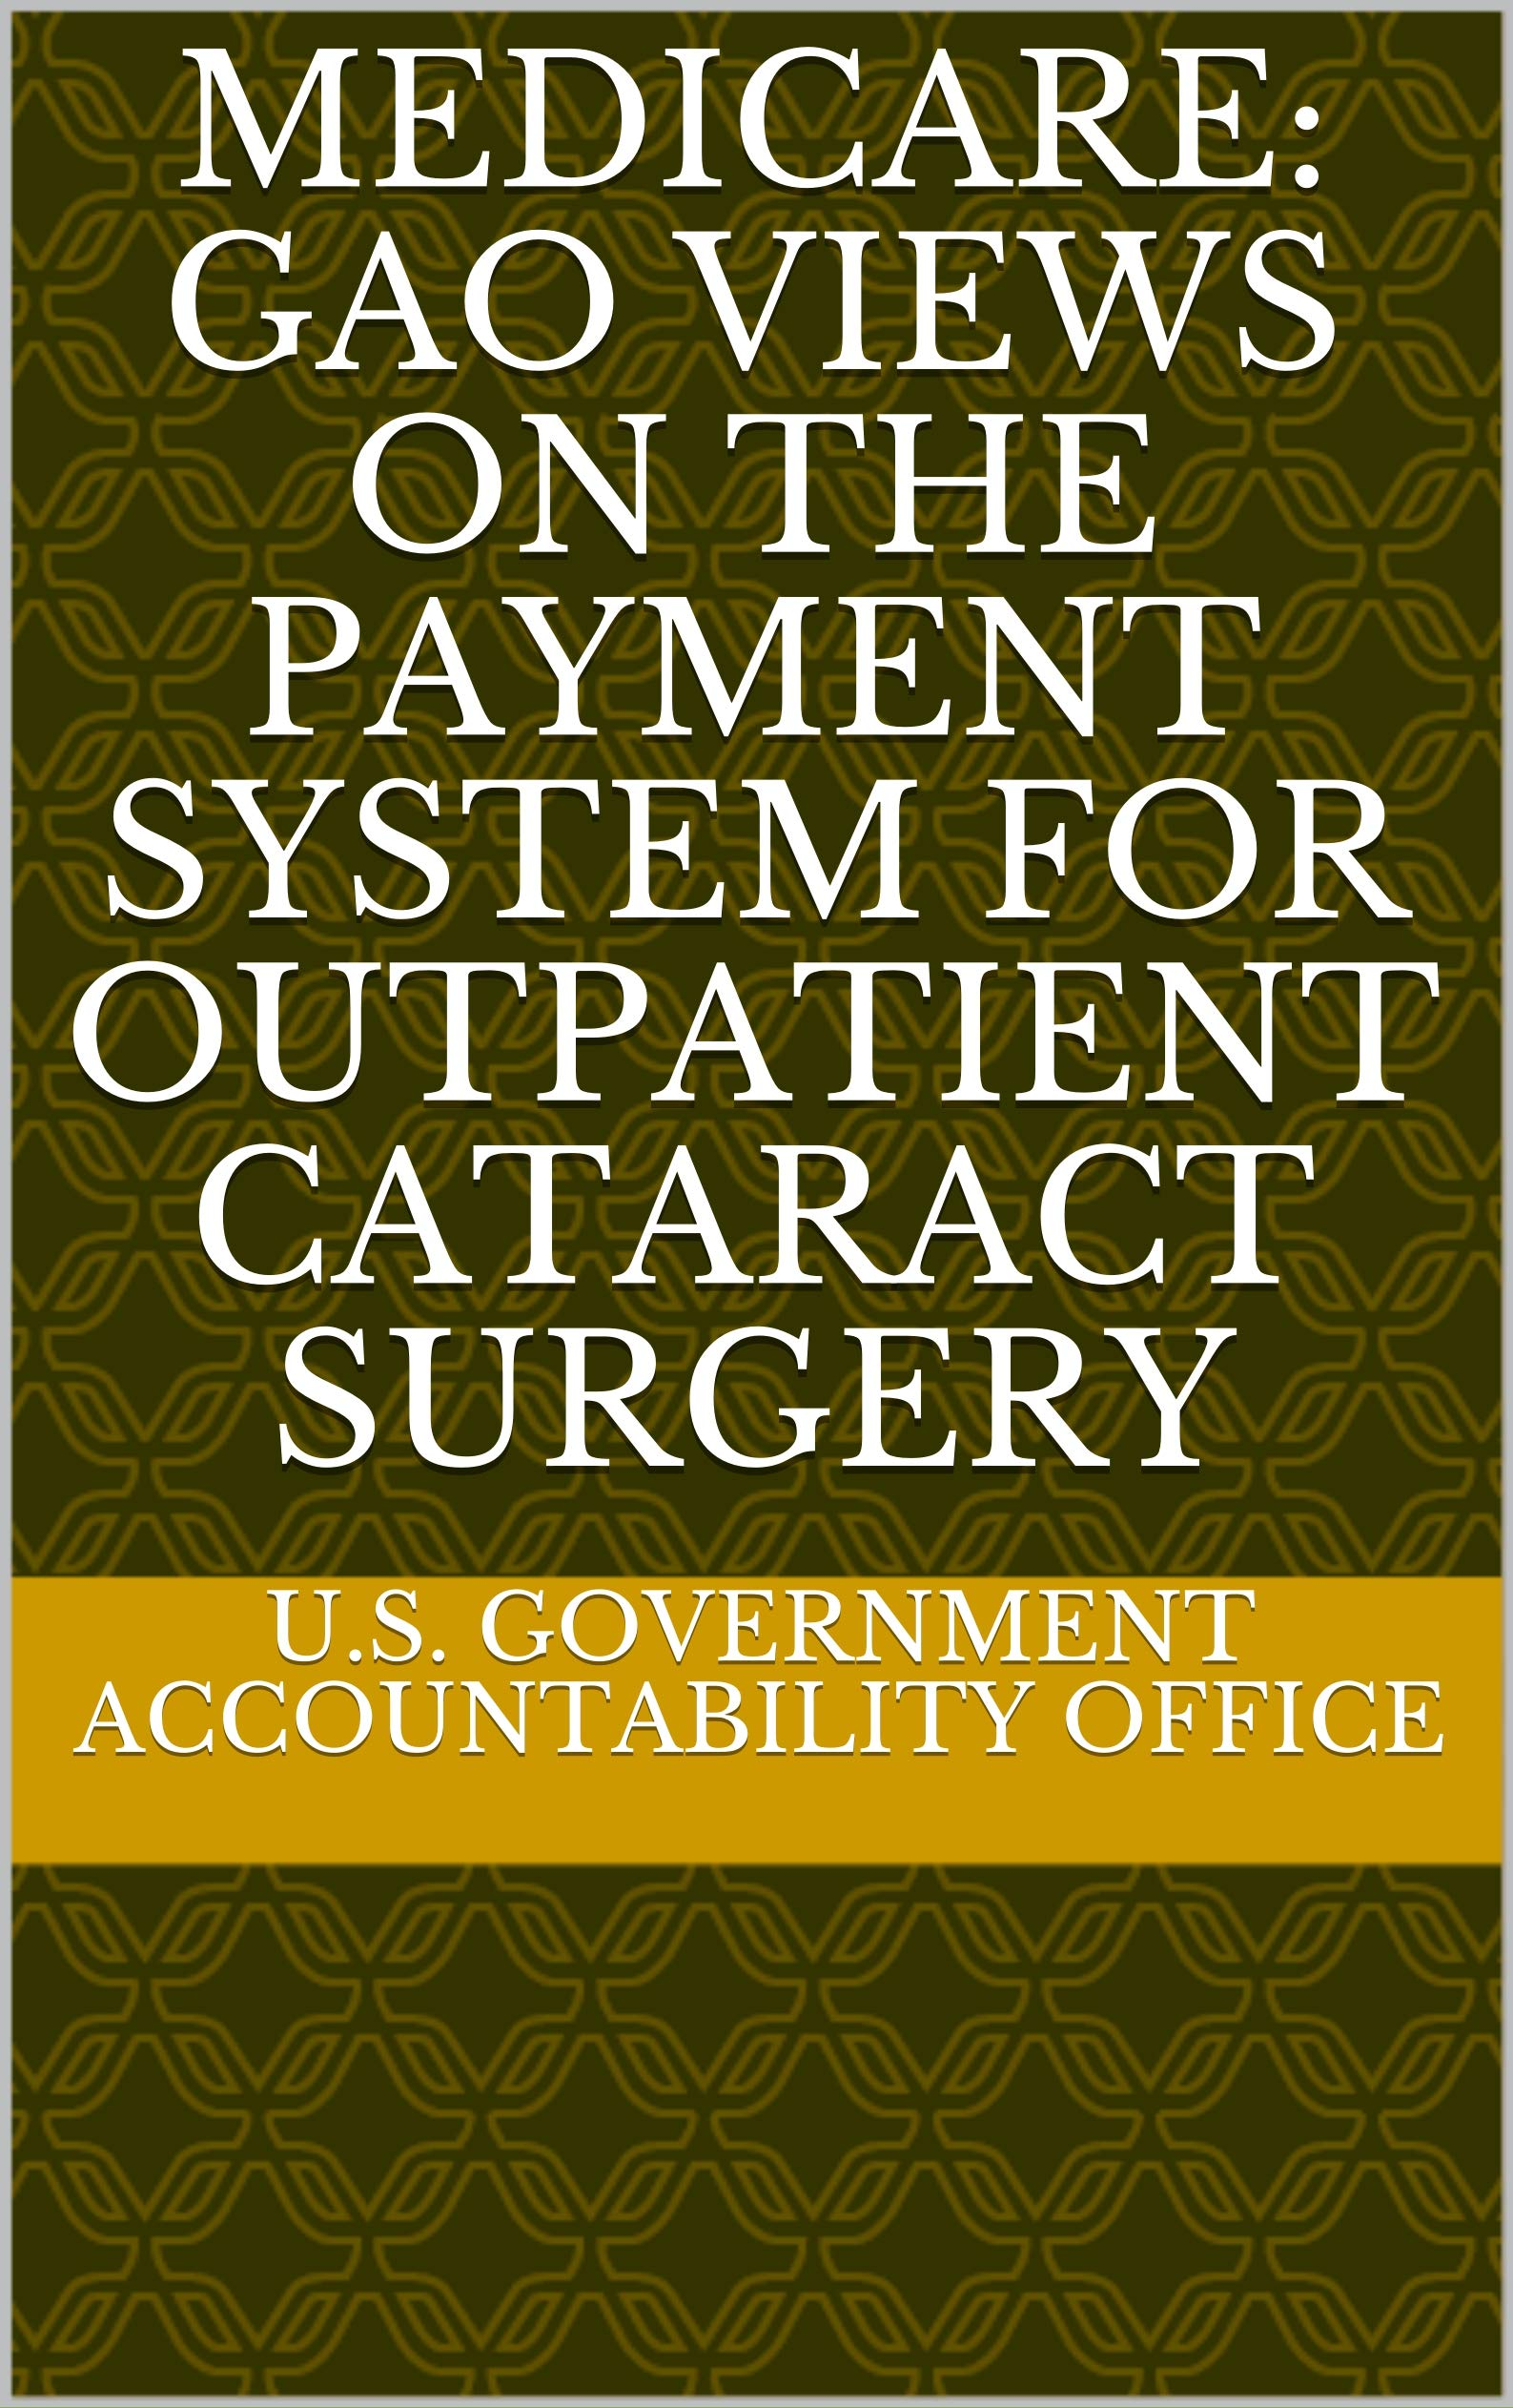 Medicare: GAO Views on the Payment System for Outpatient Cataract Surgery